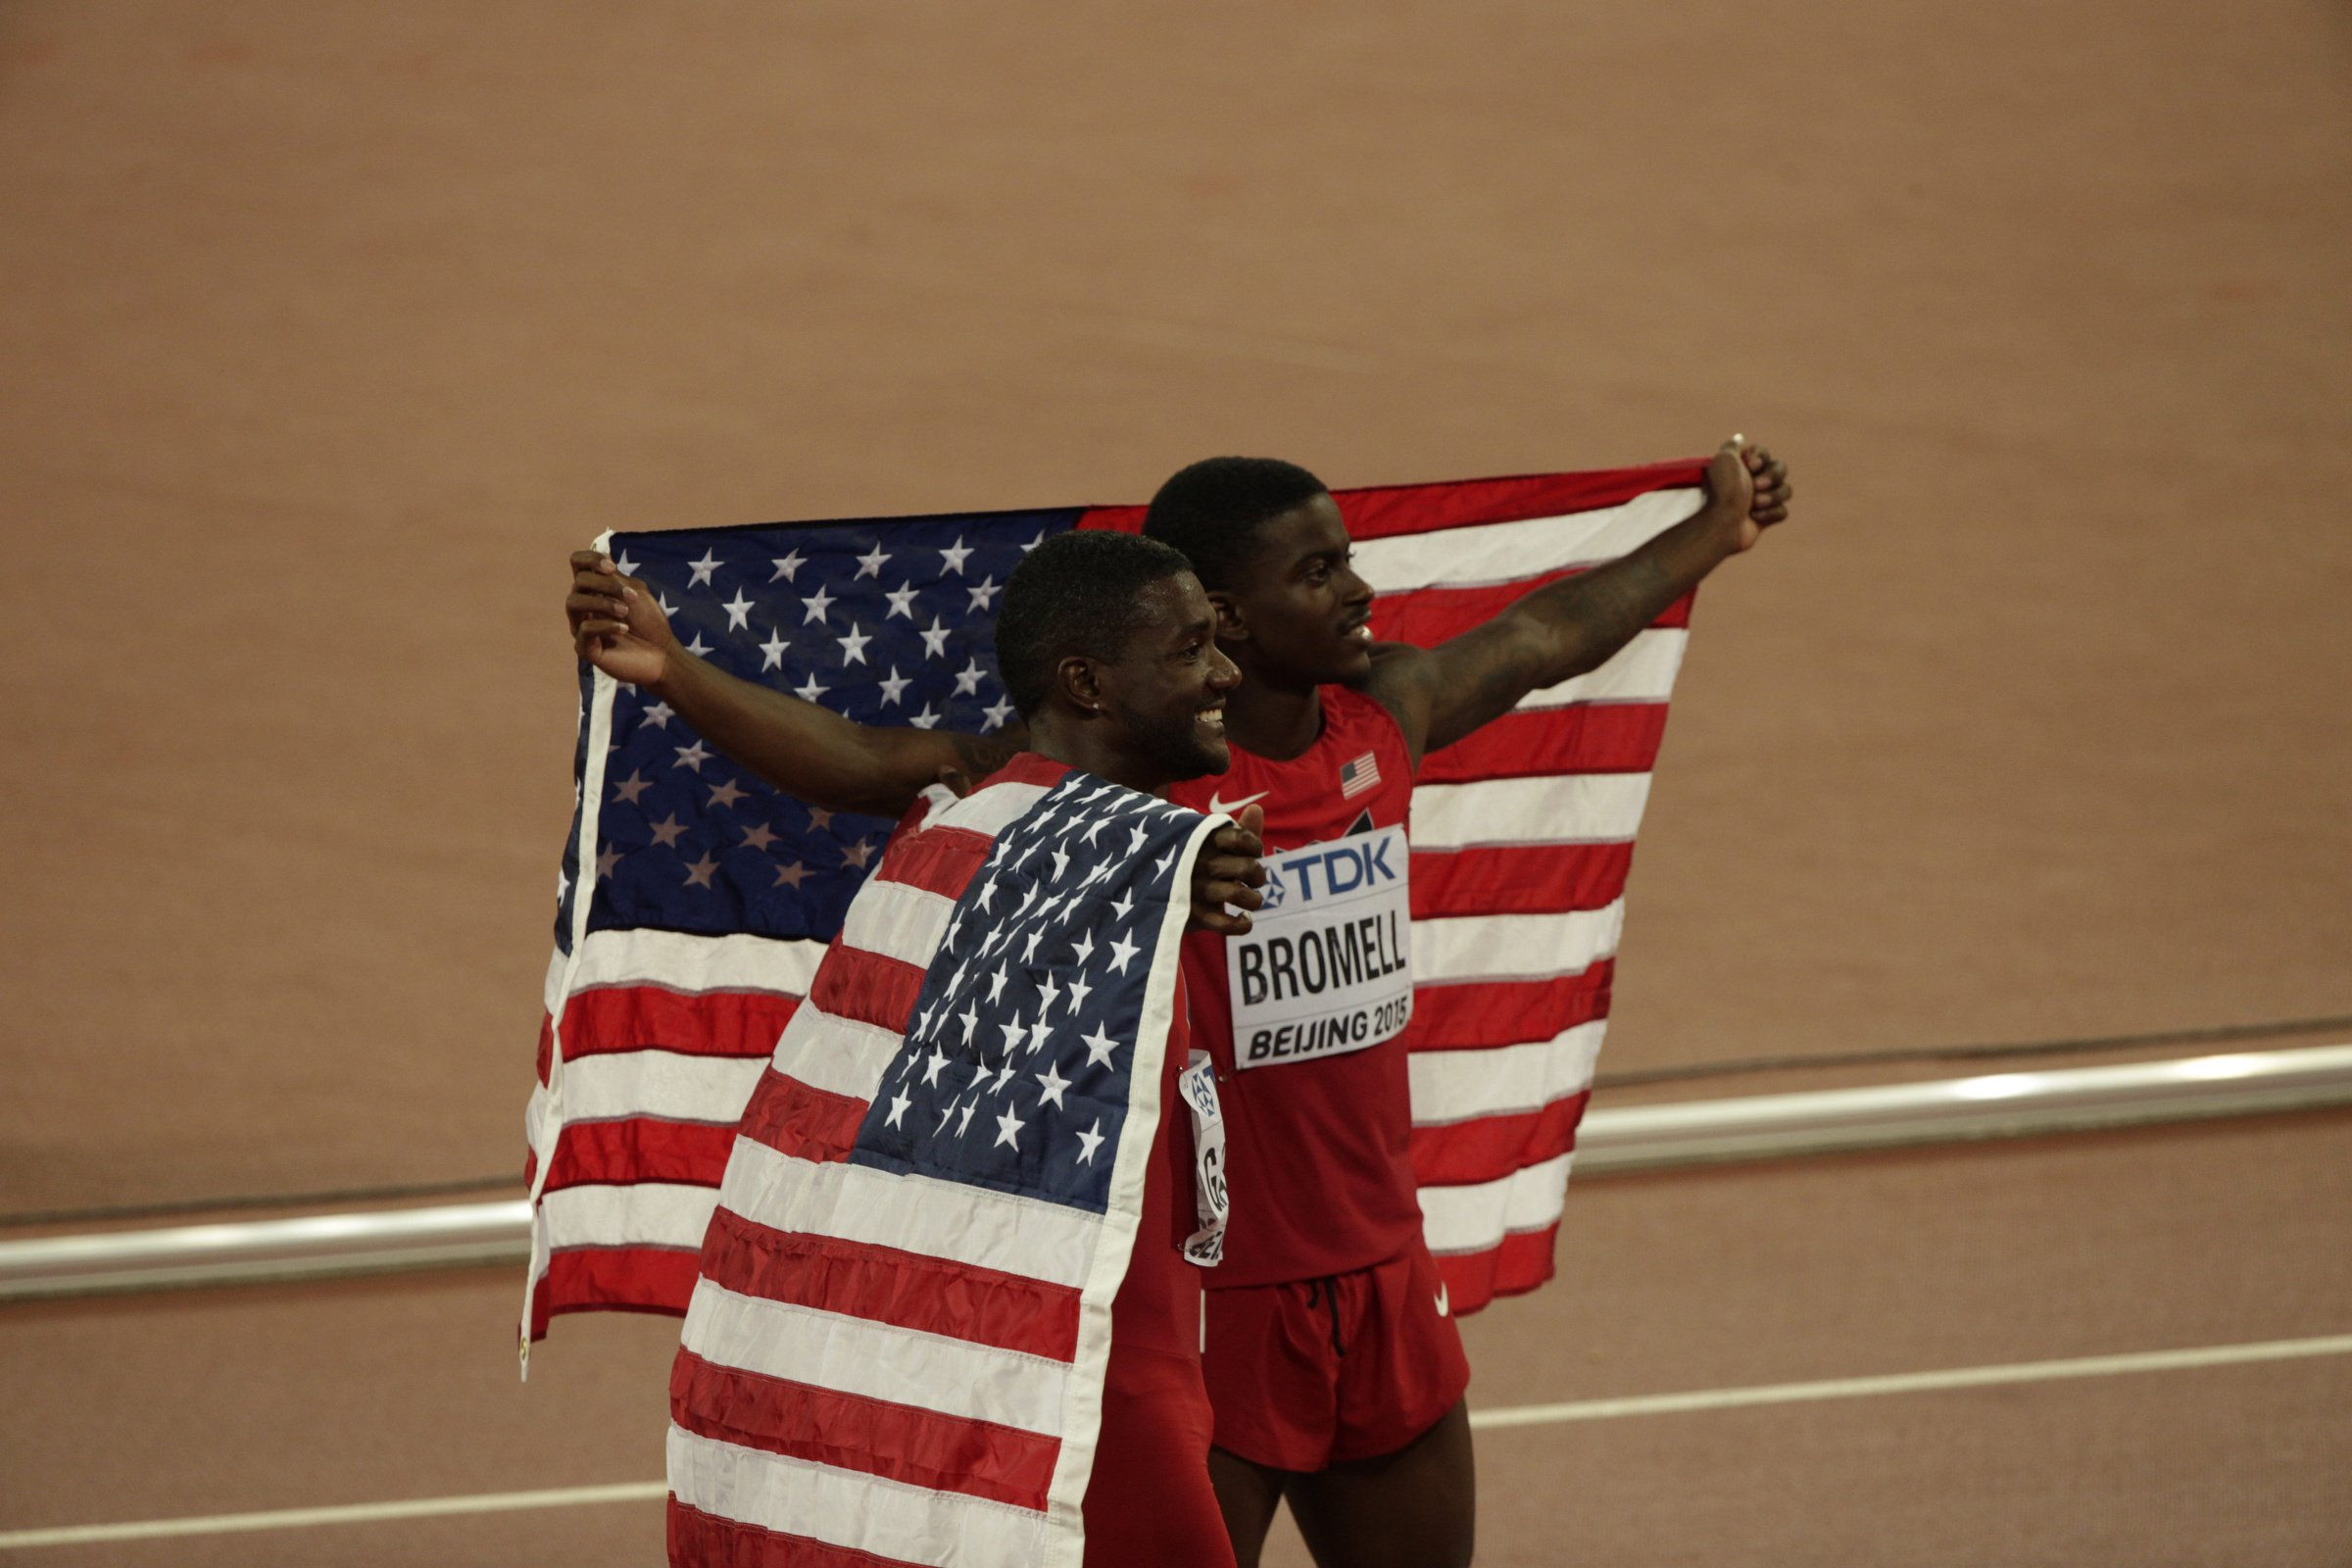 Silver medalist Justin Gatlin (USA) and bronze medalist Trayvon Bromell (USA) celebrate with U.S. flags after the men's 100-meter final.